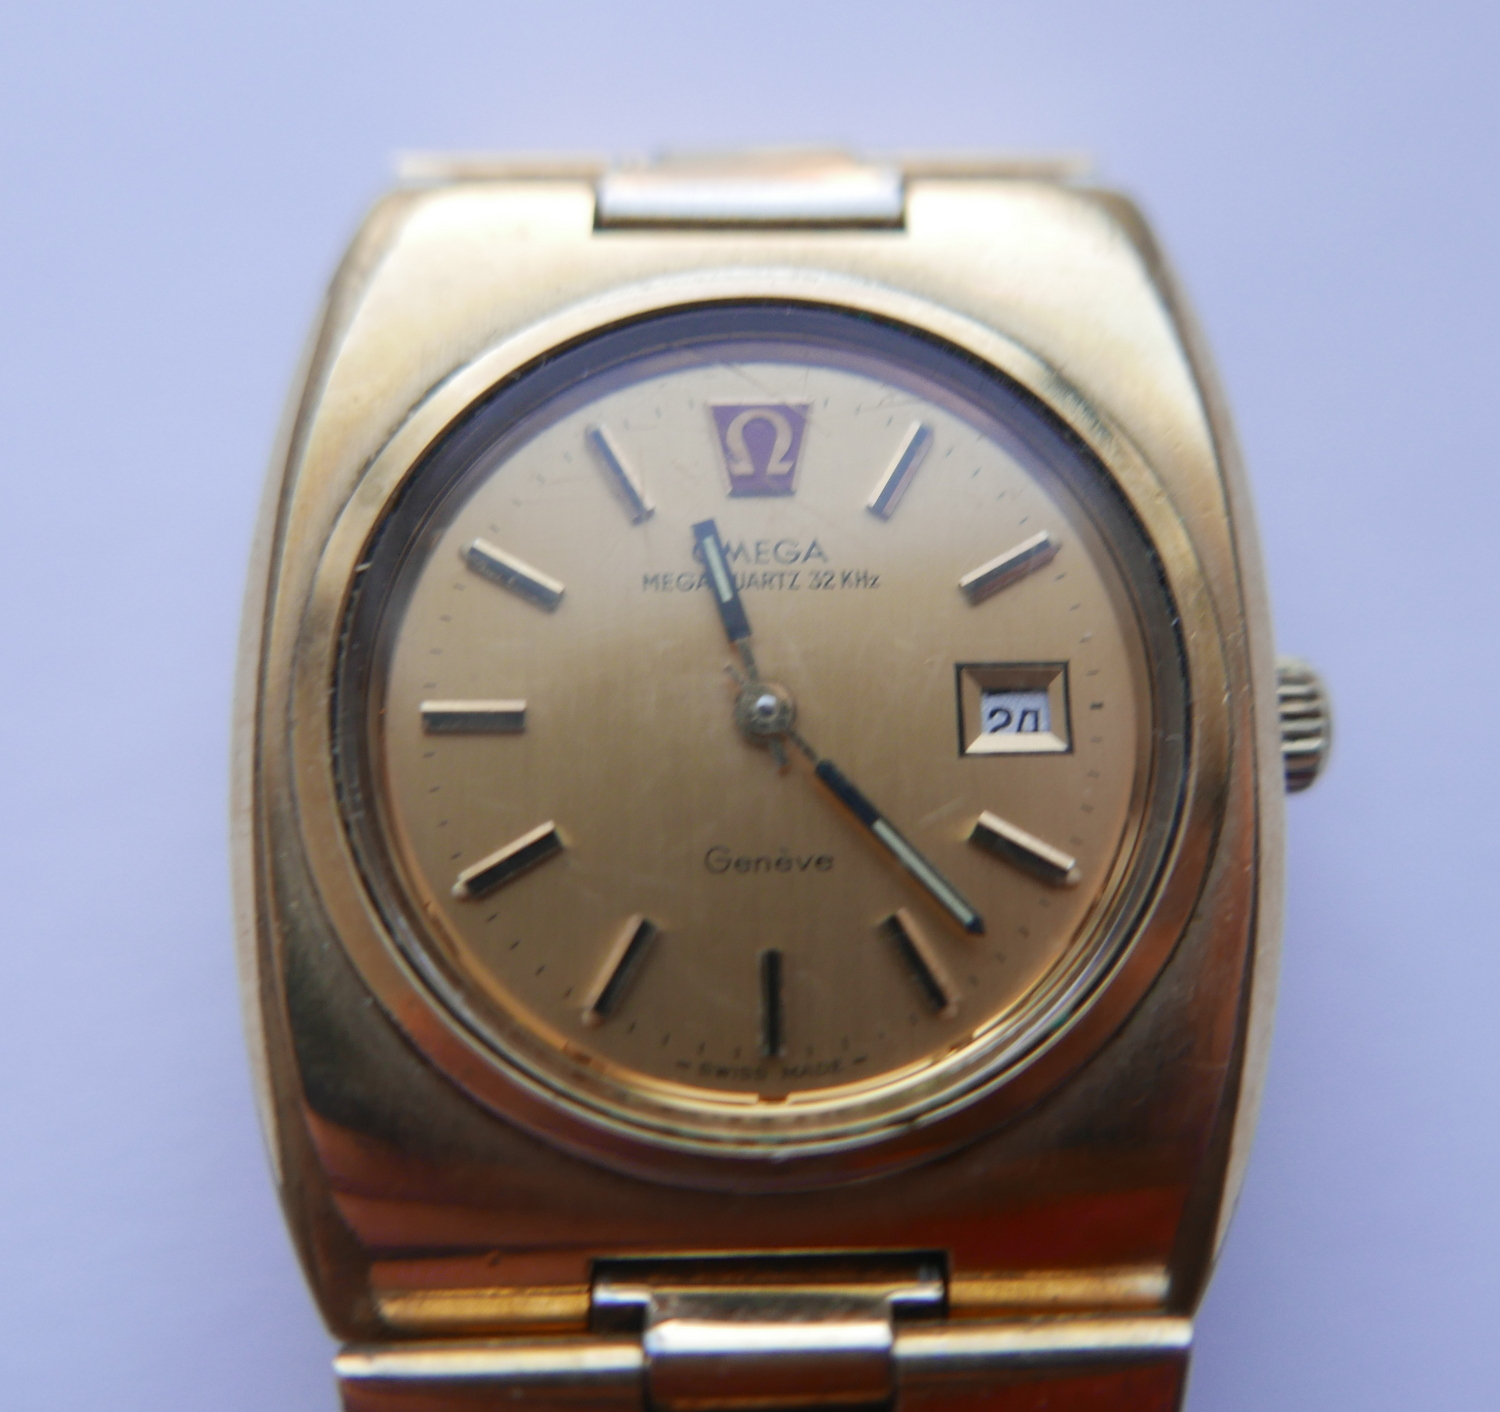 Lot 86 - Vintage Gold Plated Omega Geneve Megaquartz Mid Size Watch.